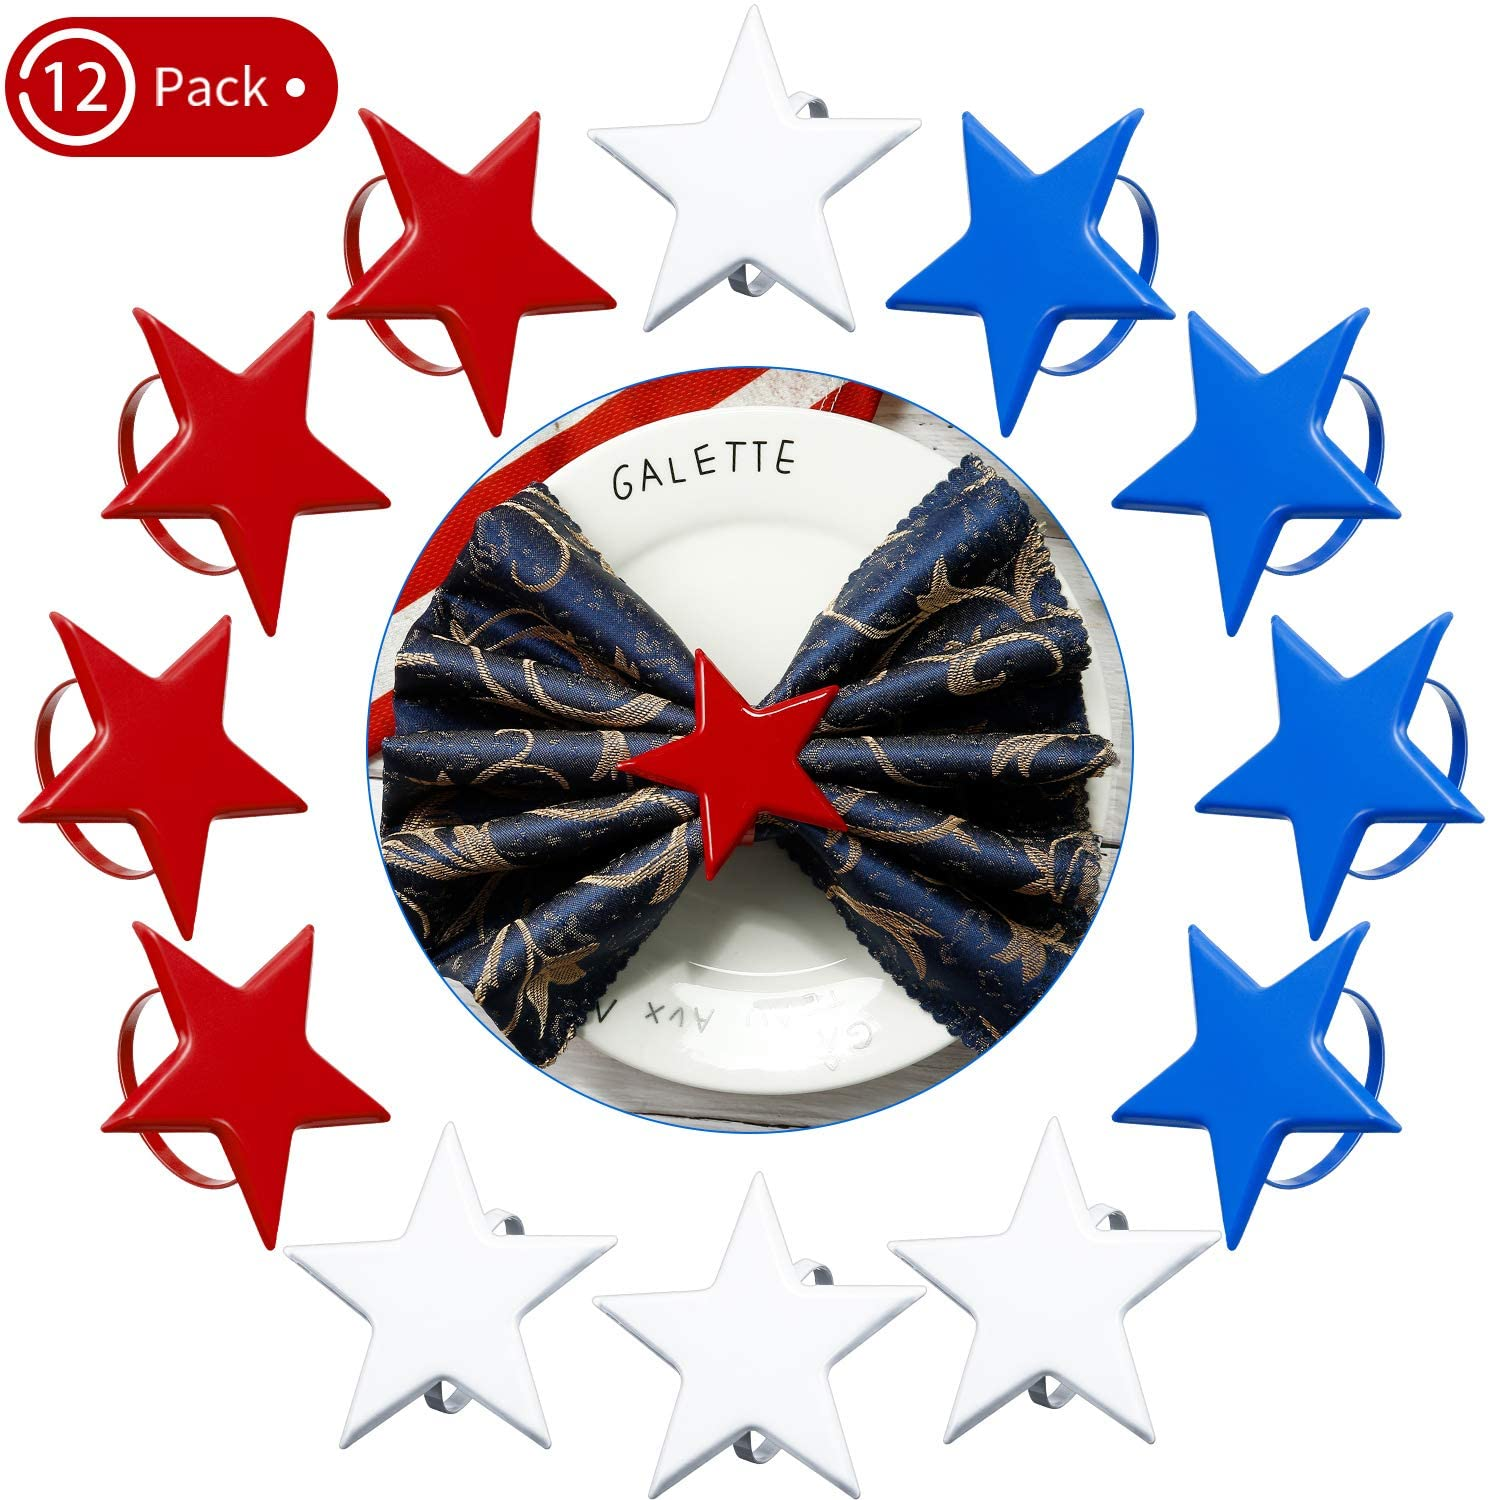 12 Pieces Napkin Rings Star Metal Napkin Ring Holder American Flag Napkin Rings Set Party Decoration for Thanksgiving Day, Weddings, Dinning Table, Everyday, Family Gatherings (Red, White, Blue)